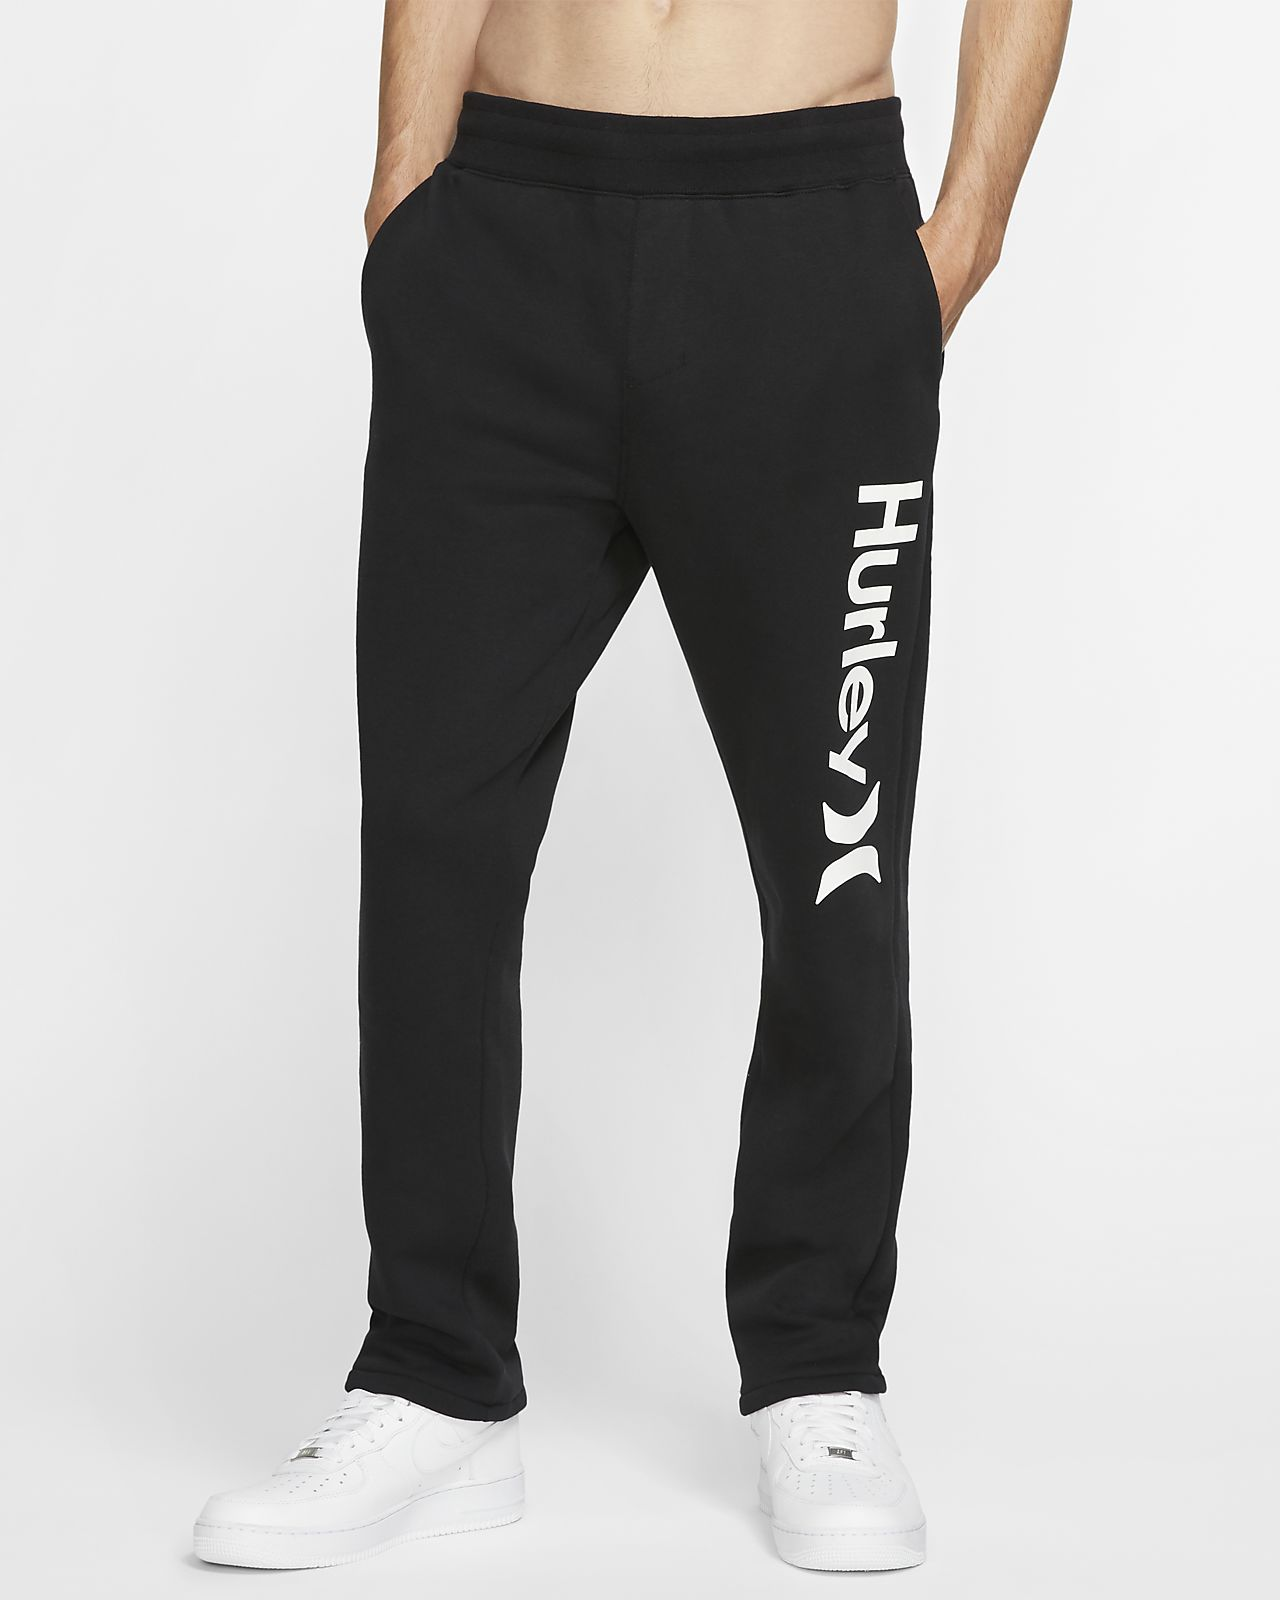 Hurley Surf Check One And Only Pantalons de xandall de teixit Fleece - Home